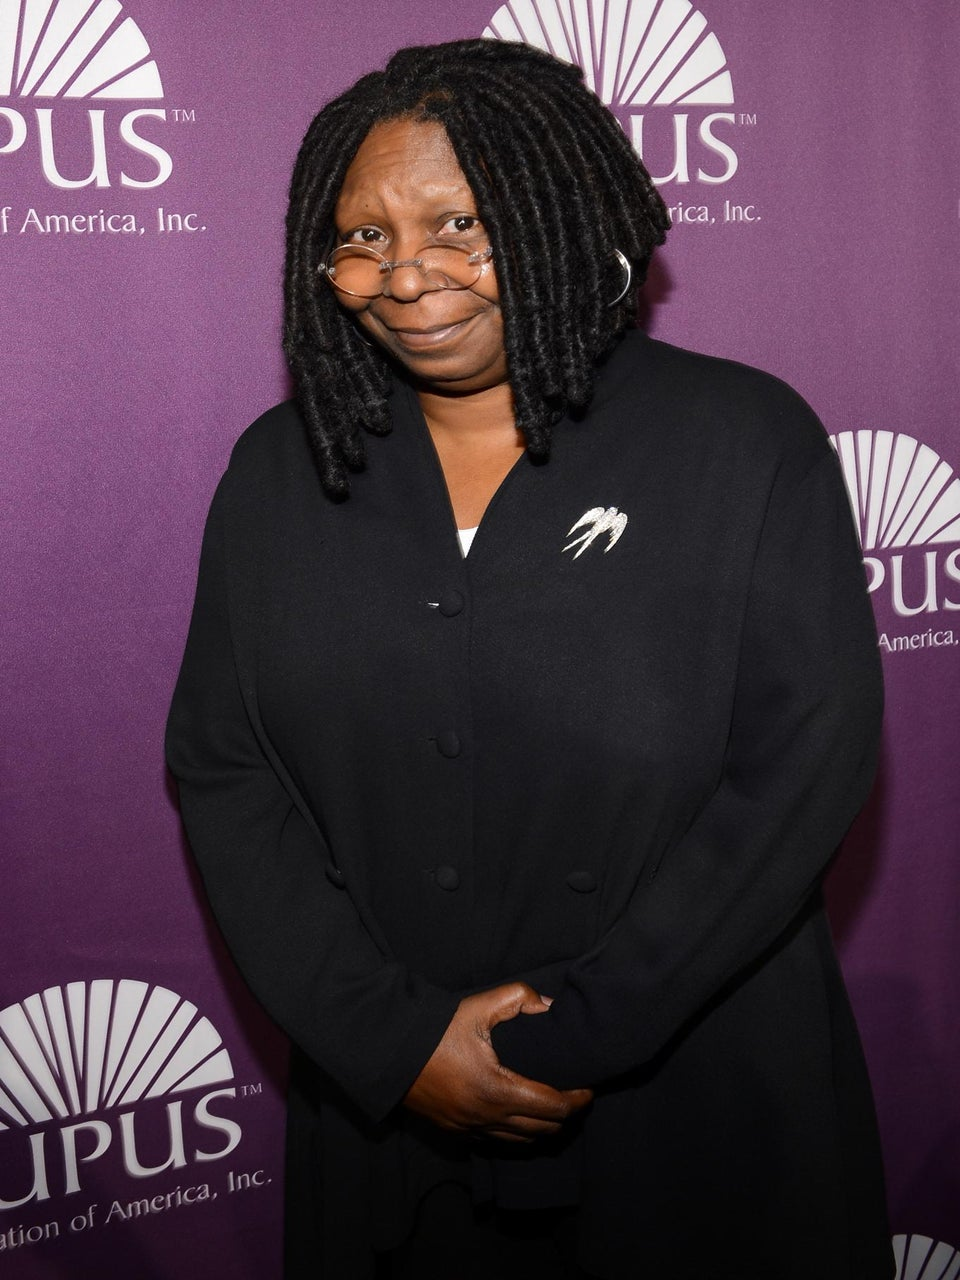 ESSENCE Poll: Do You Agree with Whoopi Goldberg's Comments on Being American, not African-American?